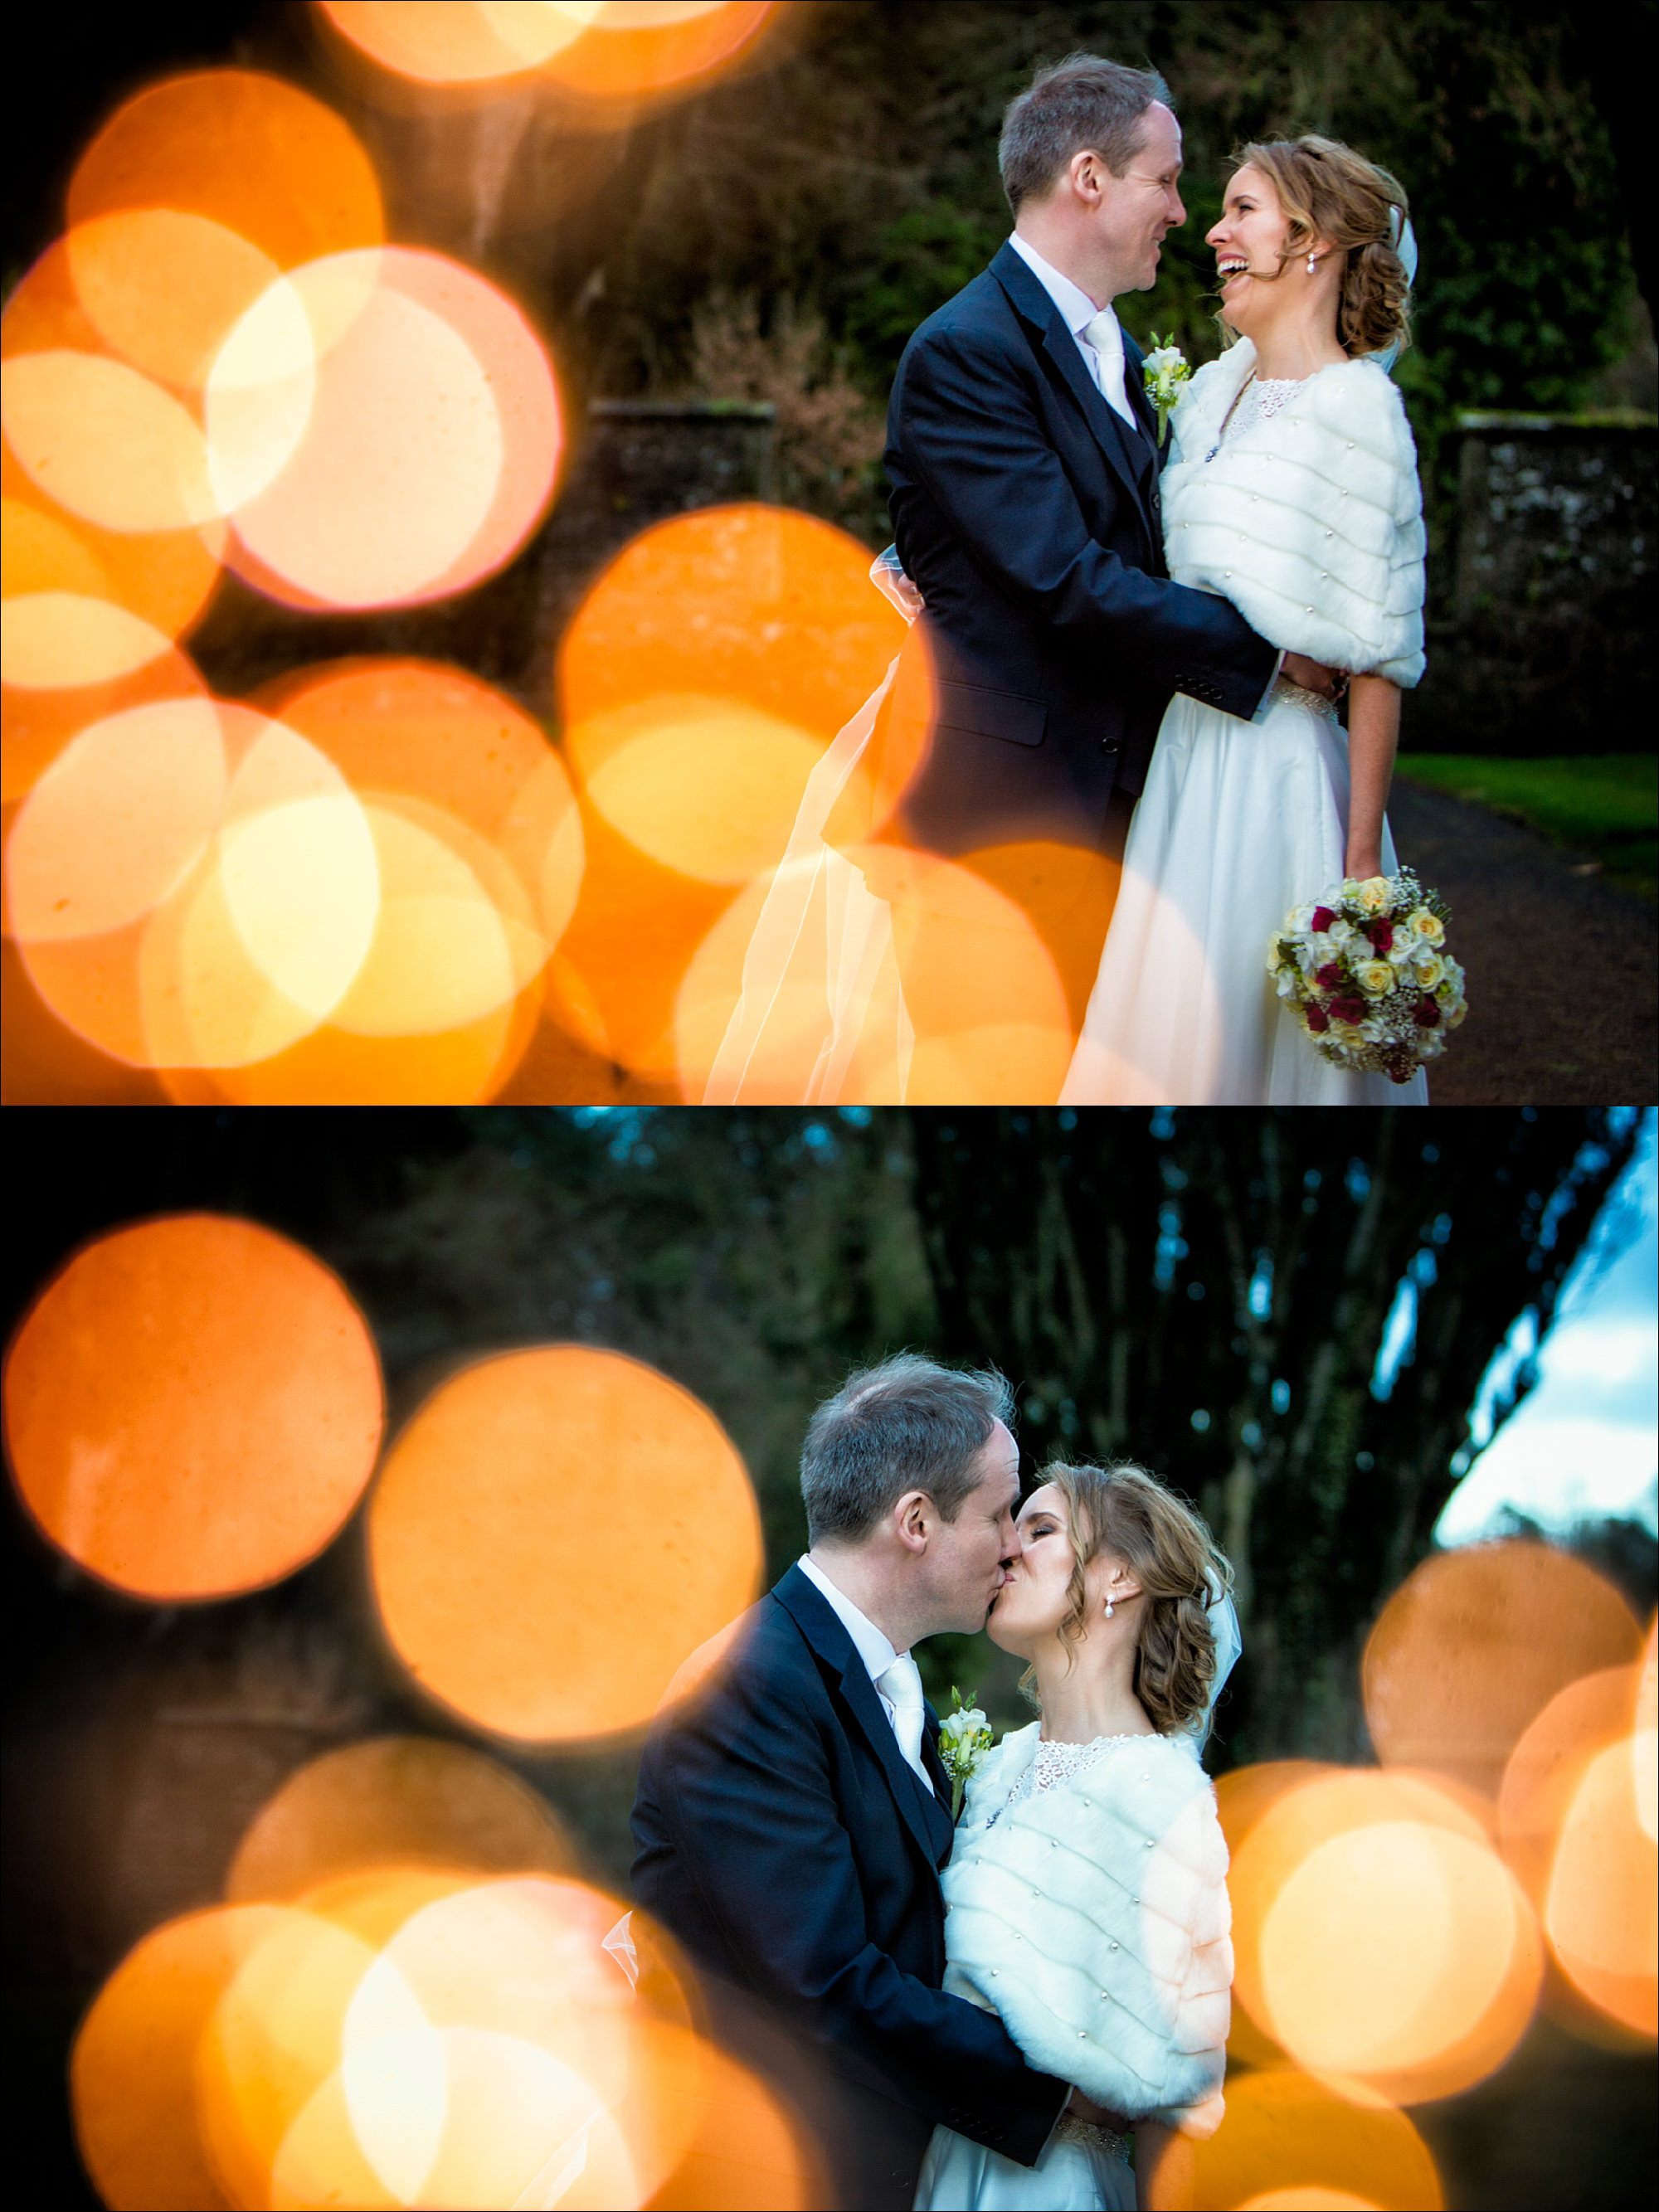 dublin wedding photographer david duignan photography tankardstown weddings slane rathfeigh church ireland 0036